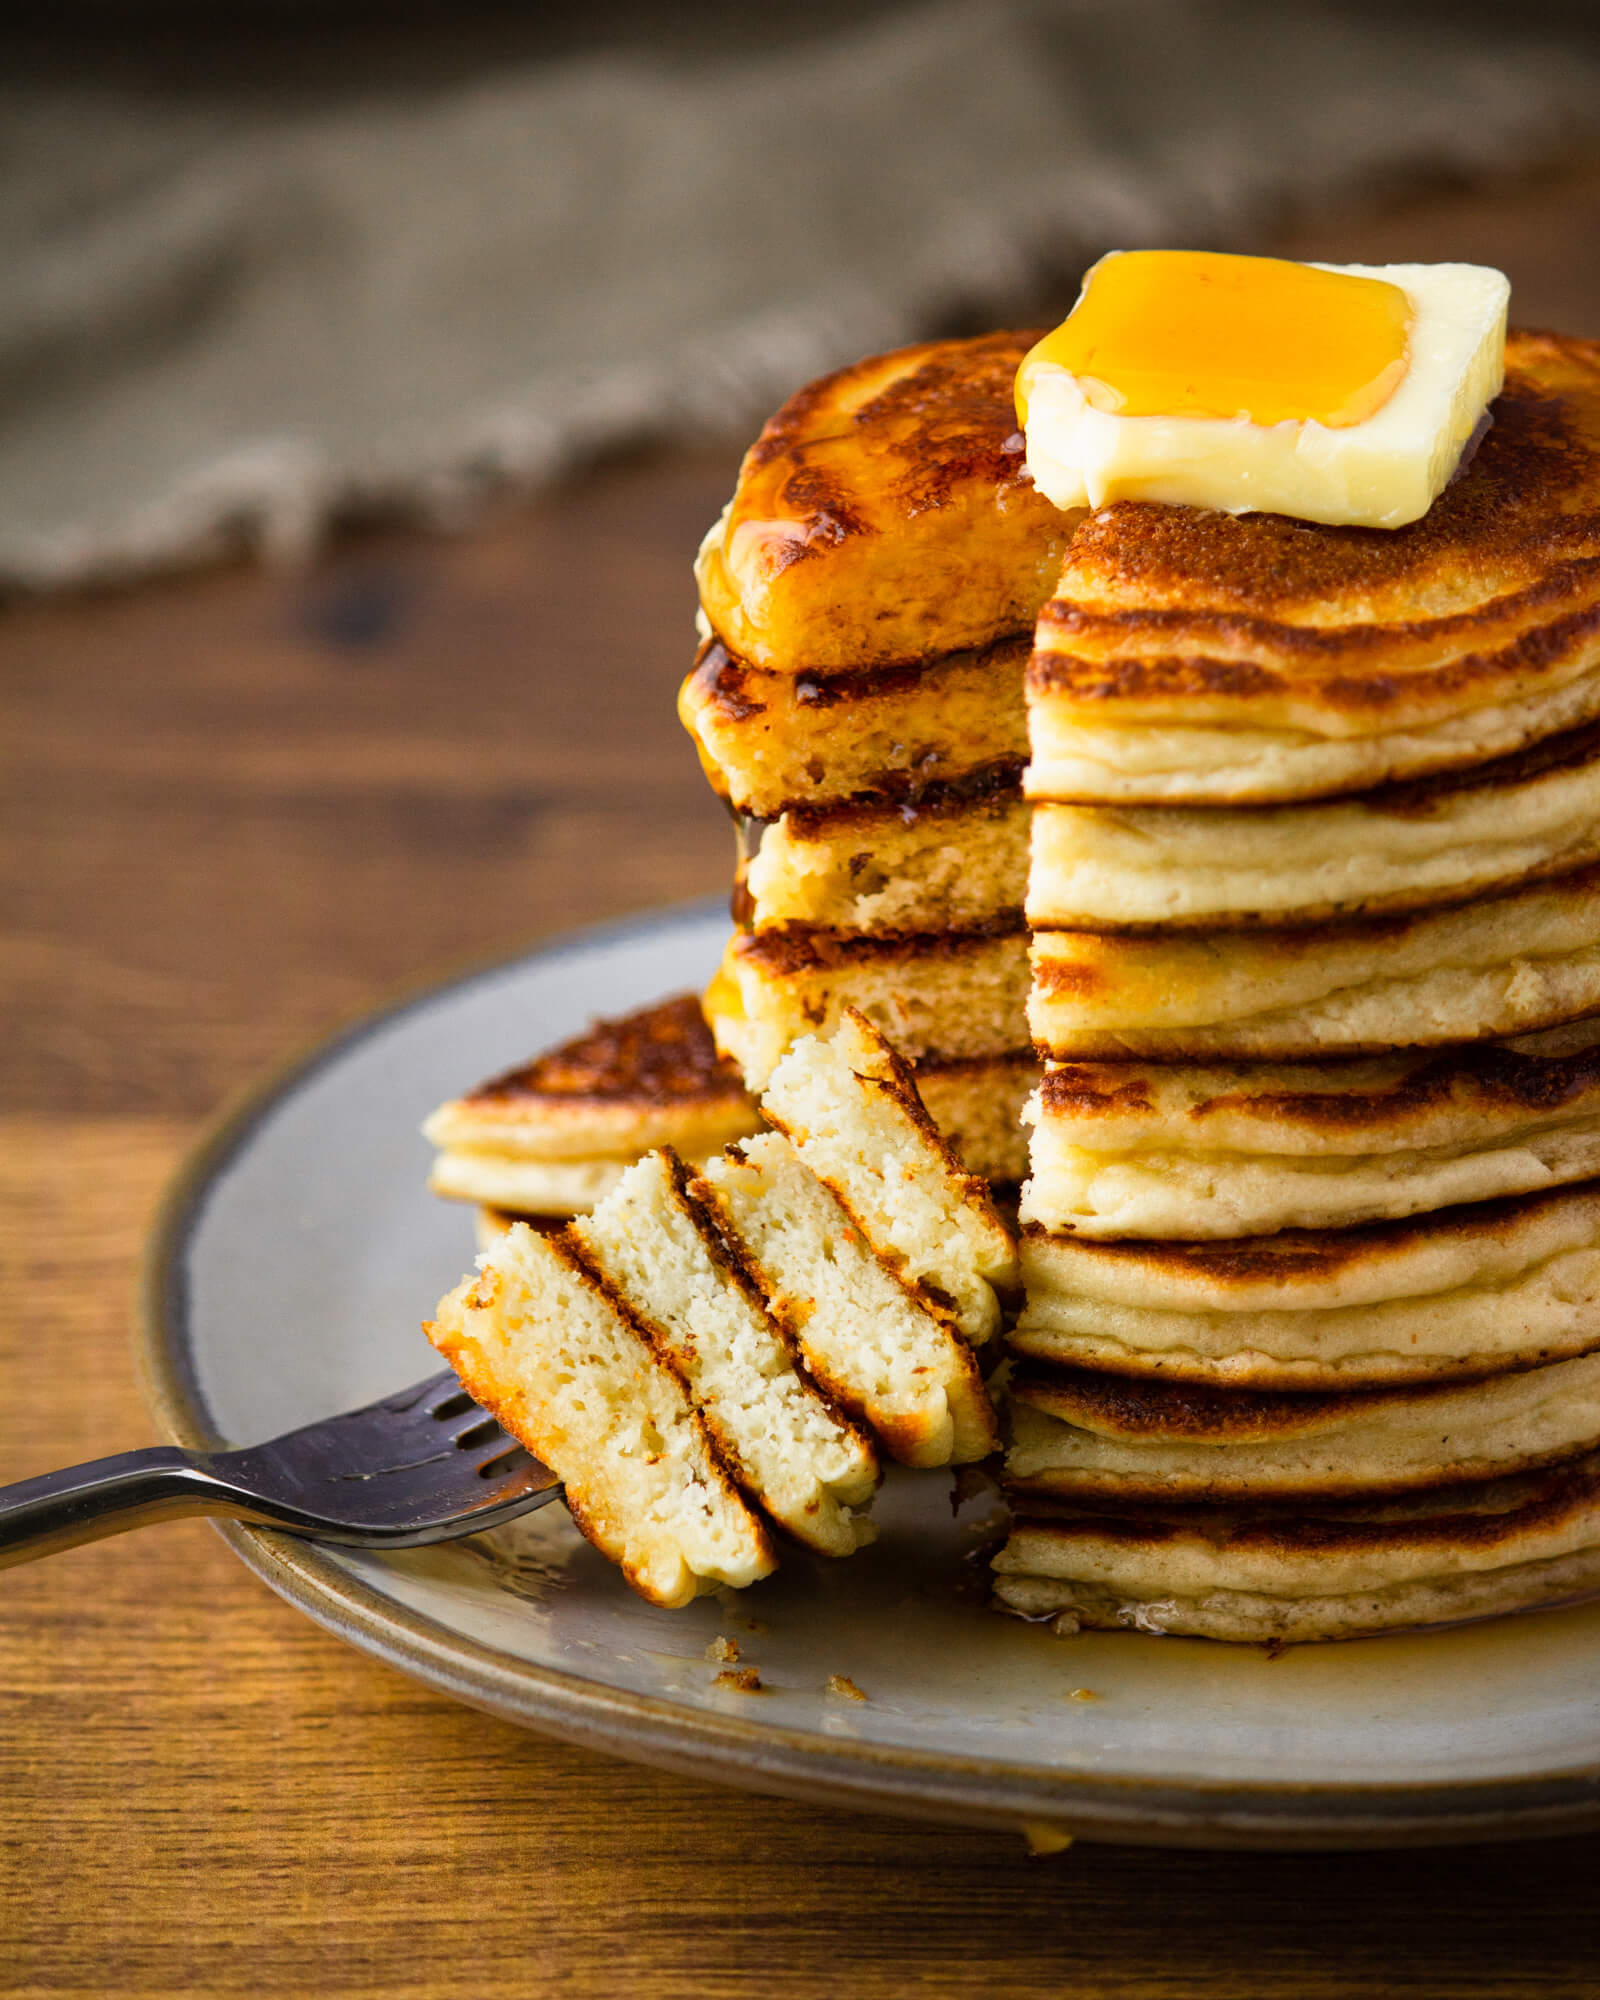 Stack of low carb pancakes made with coconut flour with slice cut out and fork. Topped with sugar free KNOW Better maple flavored syrup and butter.